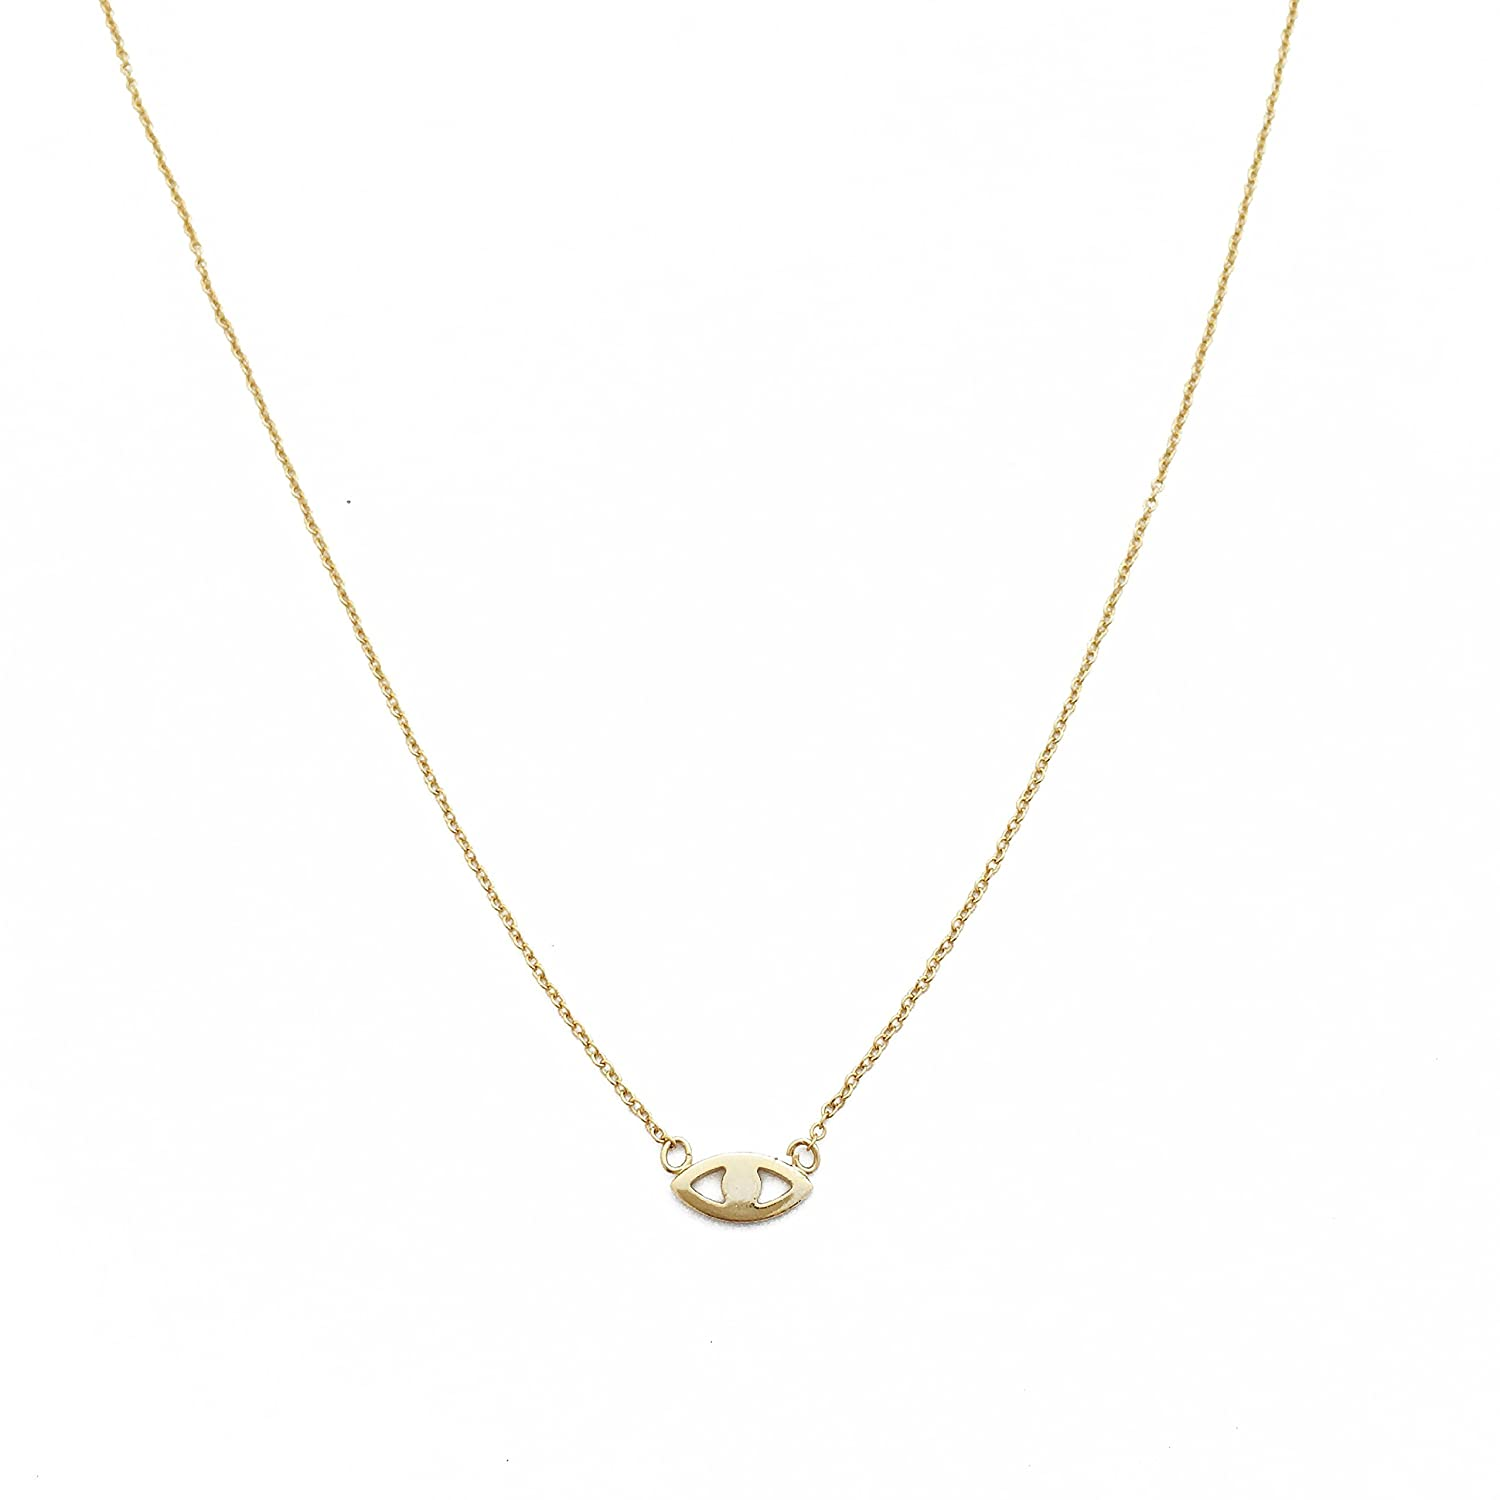 HONEYCAT Evil Eye Necklace in Gold, Rose Gold, or Silver | Minimalist, Delicate Jewelry